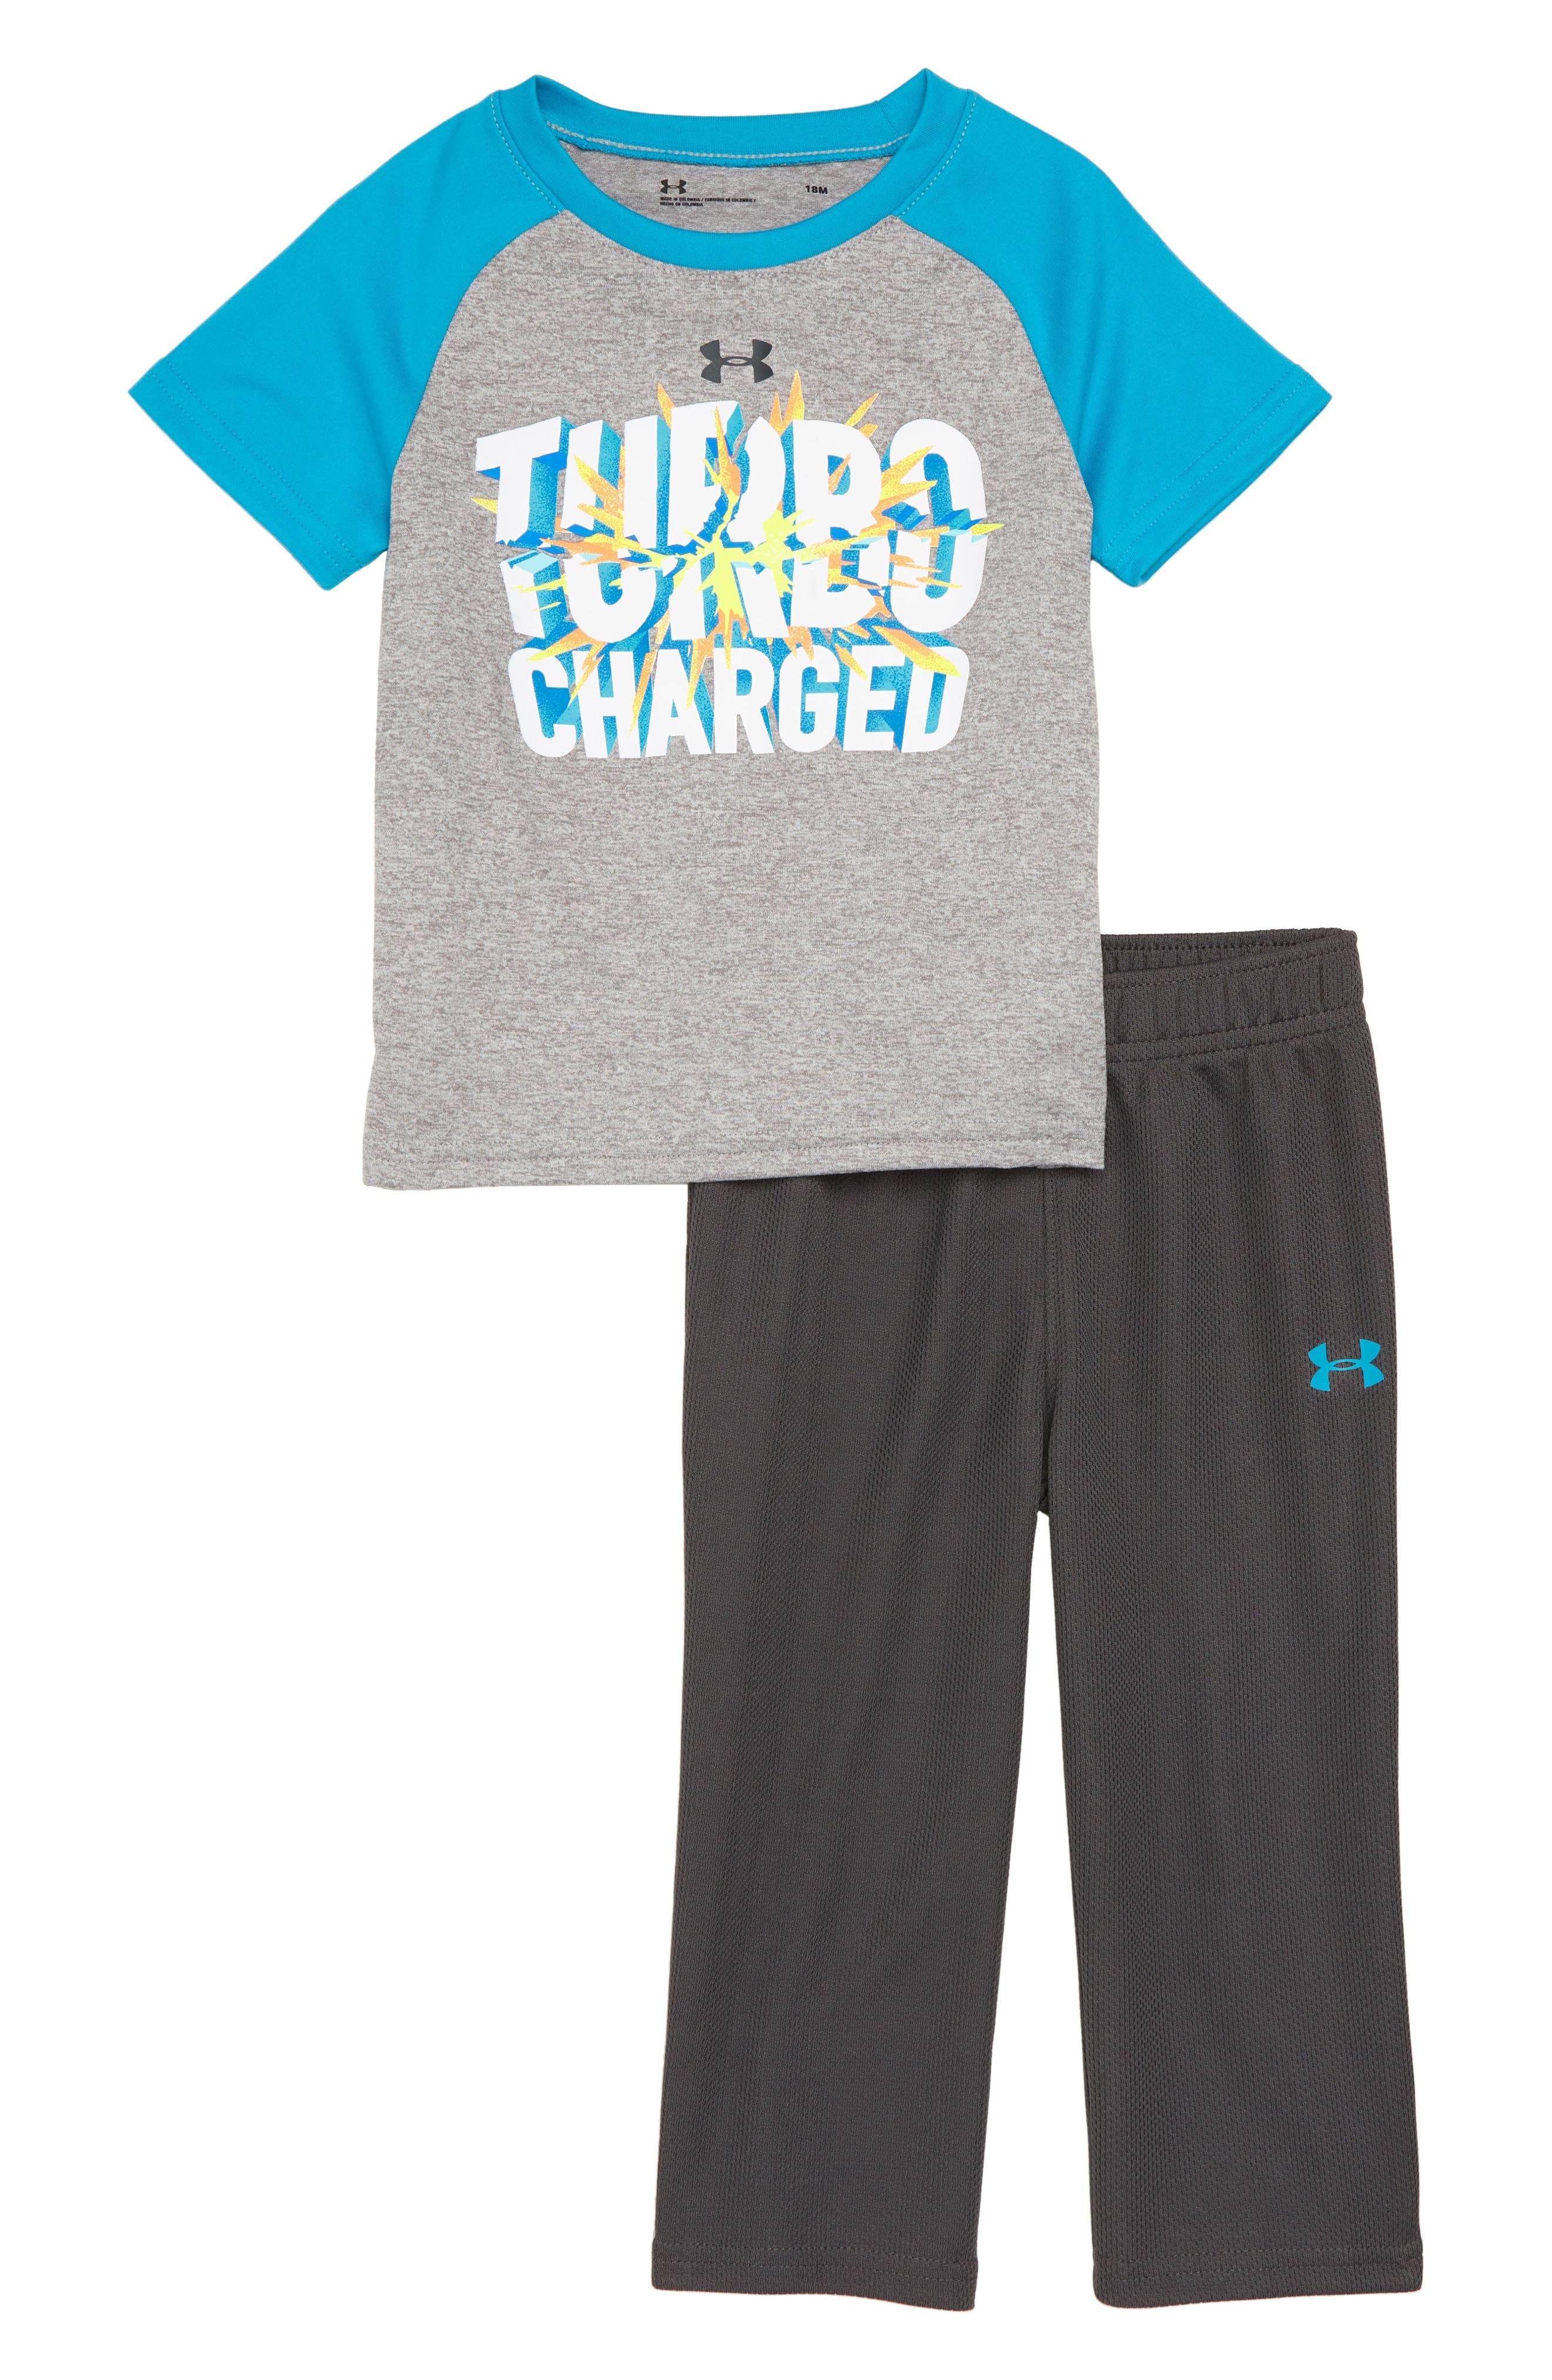 Infant Boys Under Armour Turbo Charged Graphic Shirt  Sweatpants Set